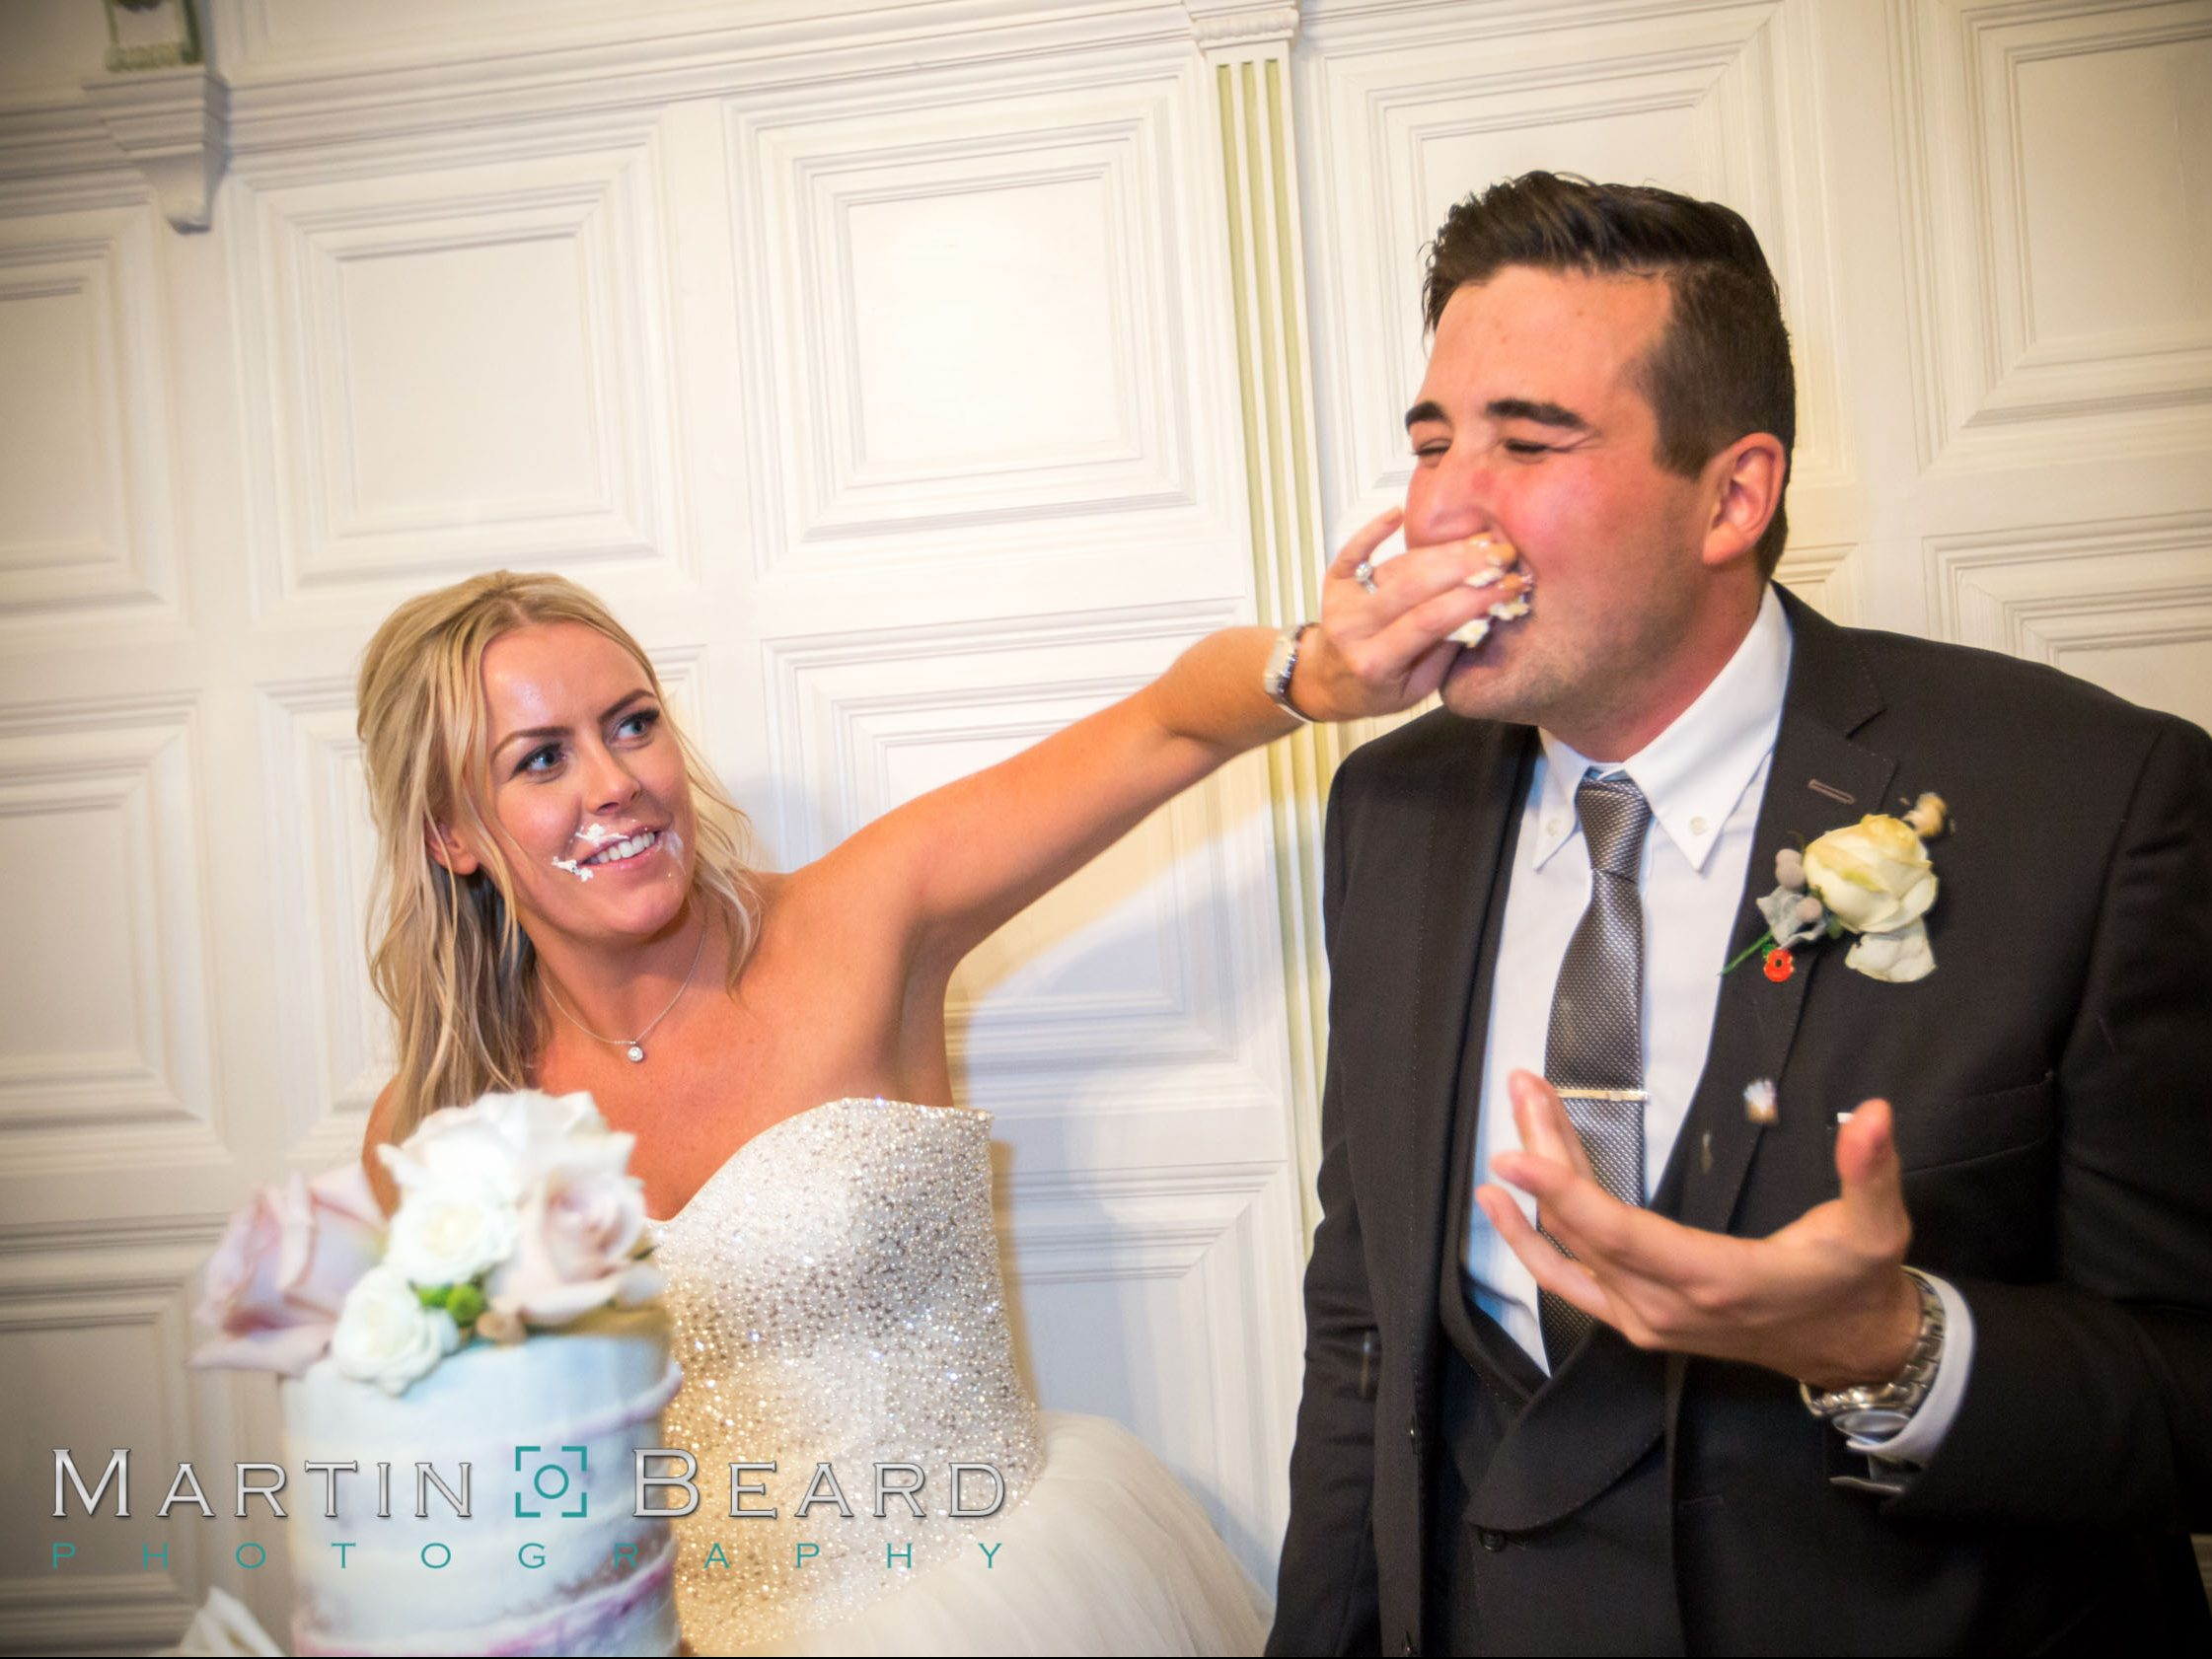 Cutting the cake, smashing it in her face, naked wedding cake at hengrave hall suffolk